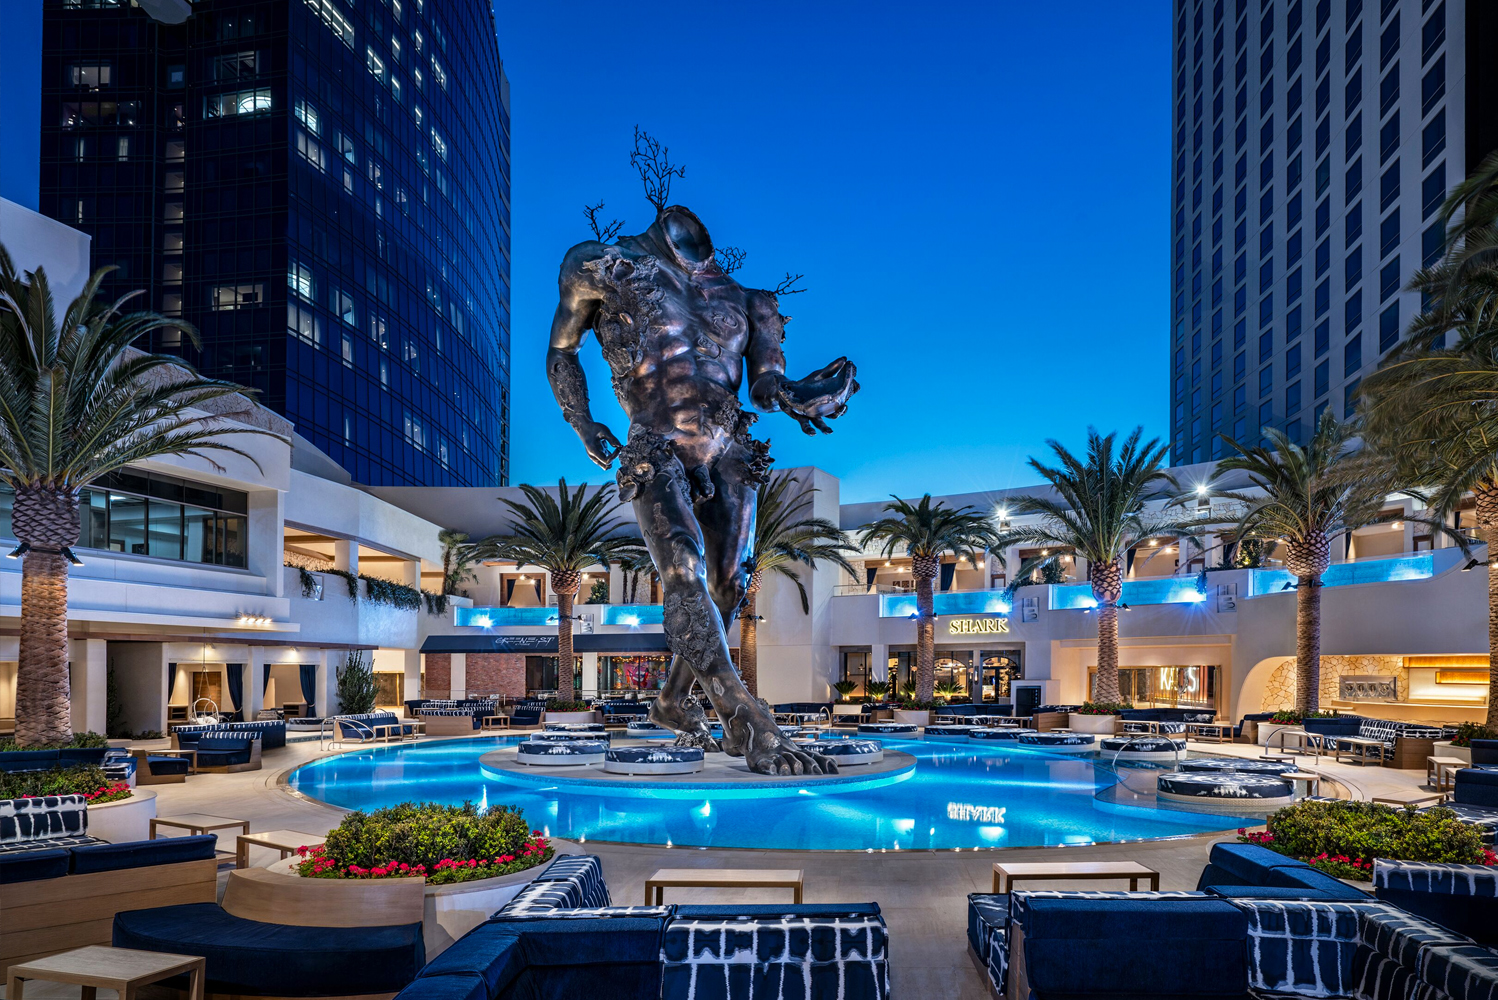 "The focal point of the dayclub is a towering 65-foot bronze sculpture by artist Damien Hirst entitled ""Demon with Bowl"" (2014) which rises from the center of one of the two main pools."